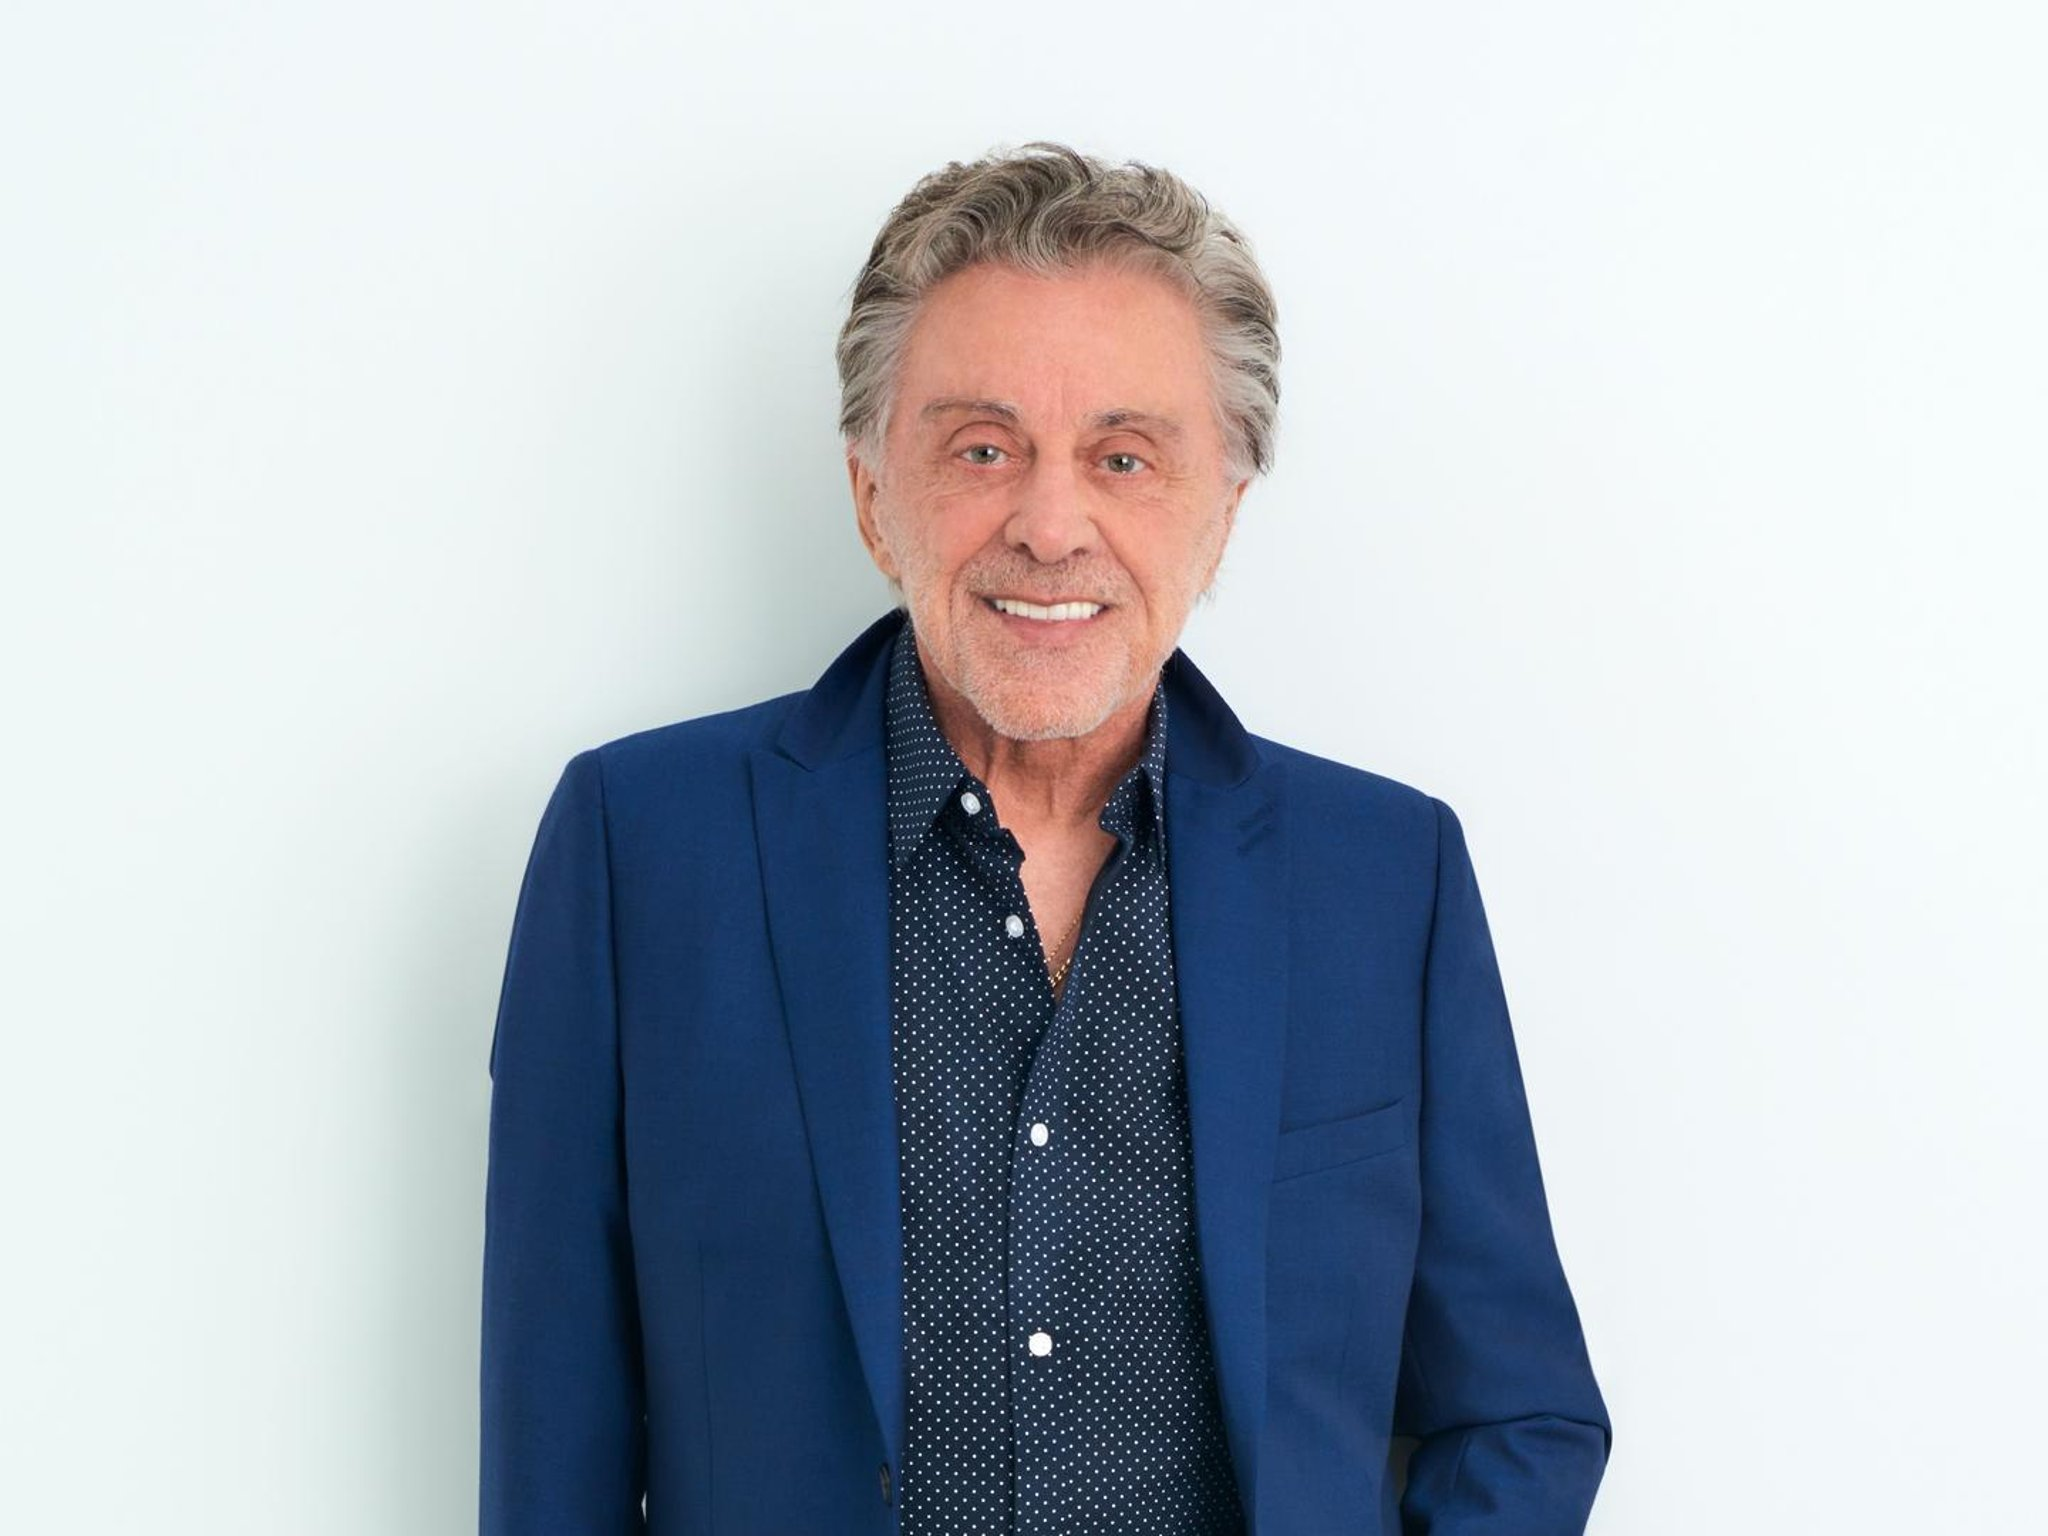 Jersey Boys legends Frankie Valli and The Four Seasons to play Scarborough Open Air Theatre in summer 2022